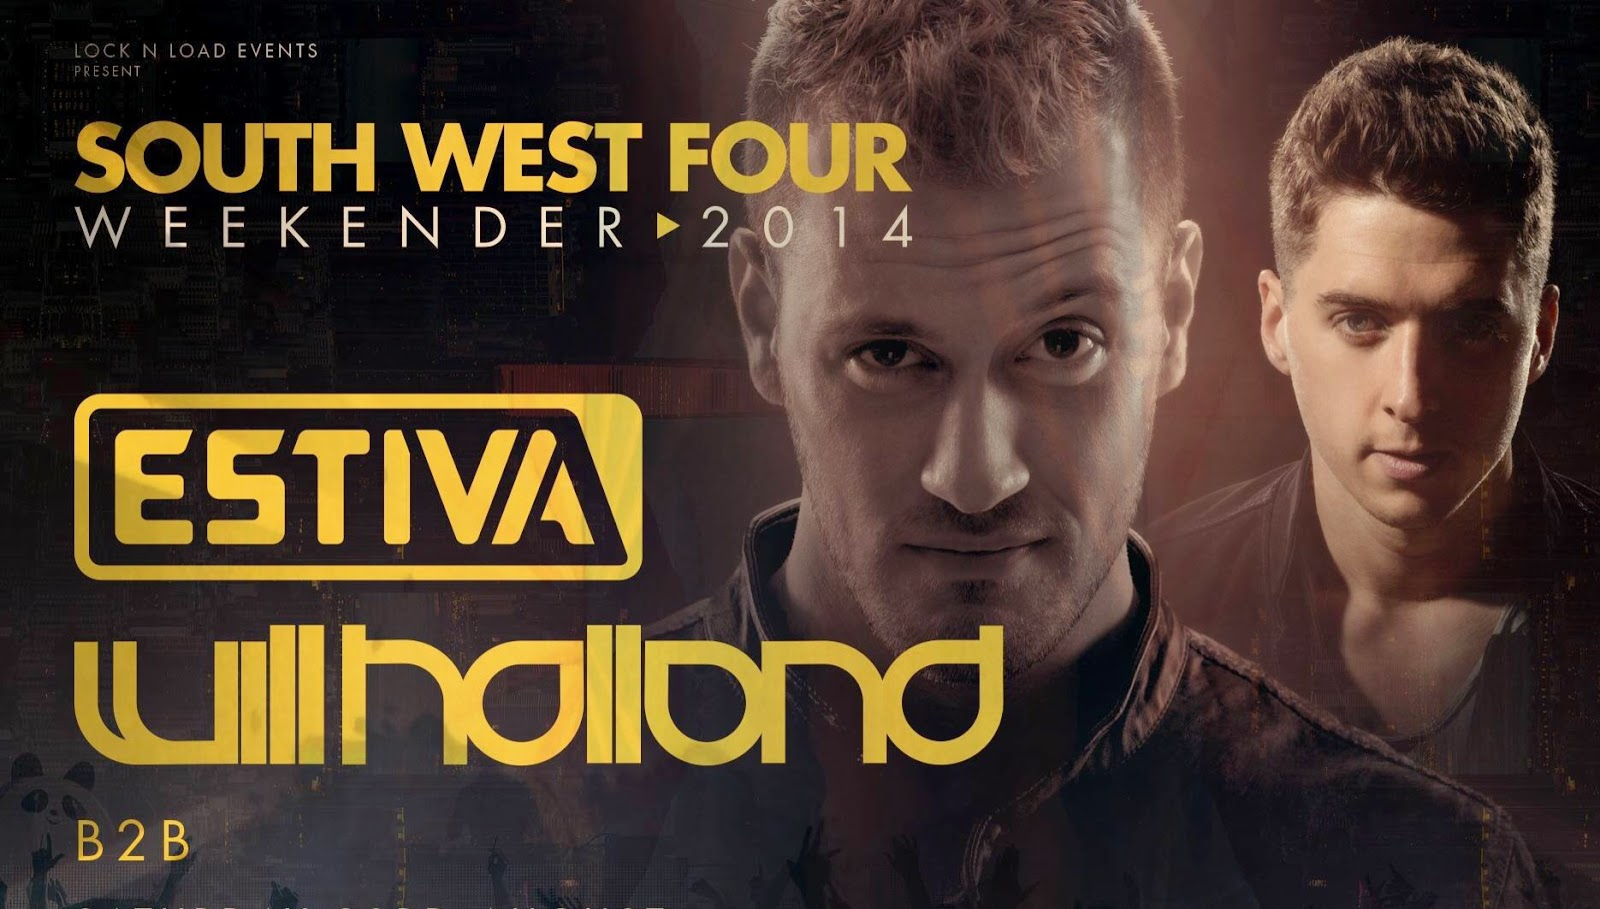 estiva b2b will holland at south west four